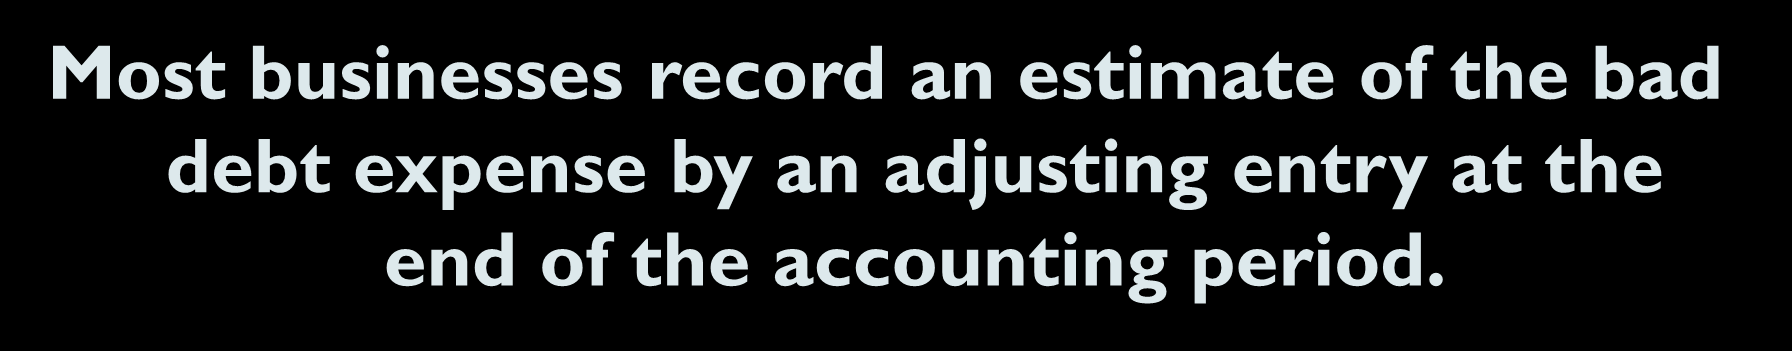 7-11 Uncollectible Accounts Receivable Most businesses record an estimate of the bad debt expense by an adjusting entry at the end of the accounting period.